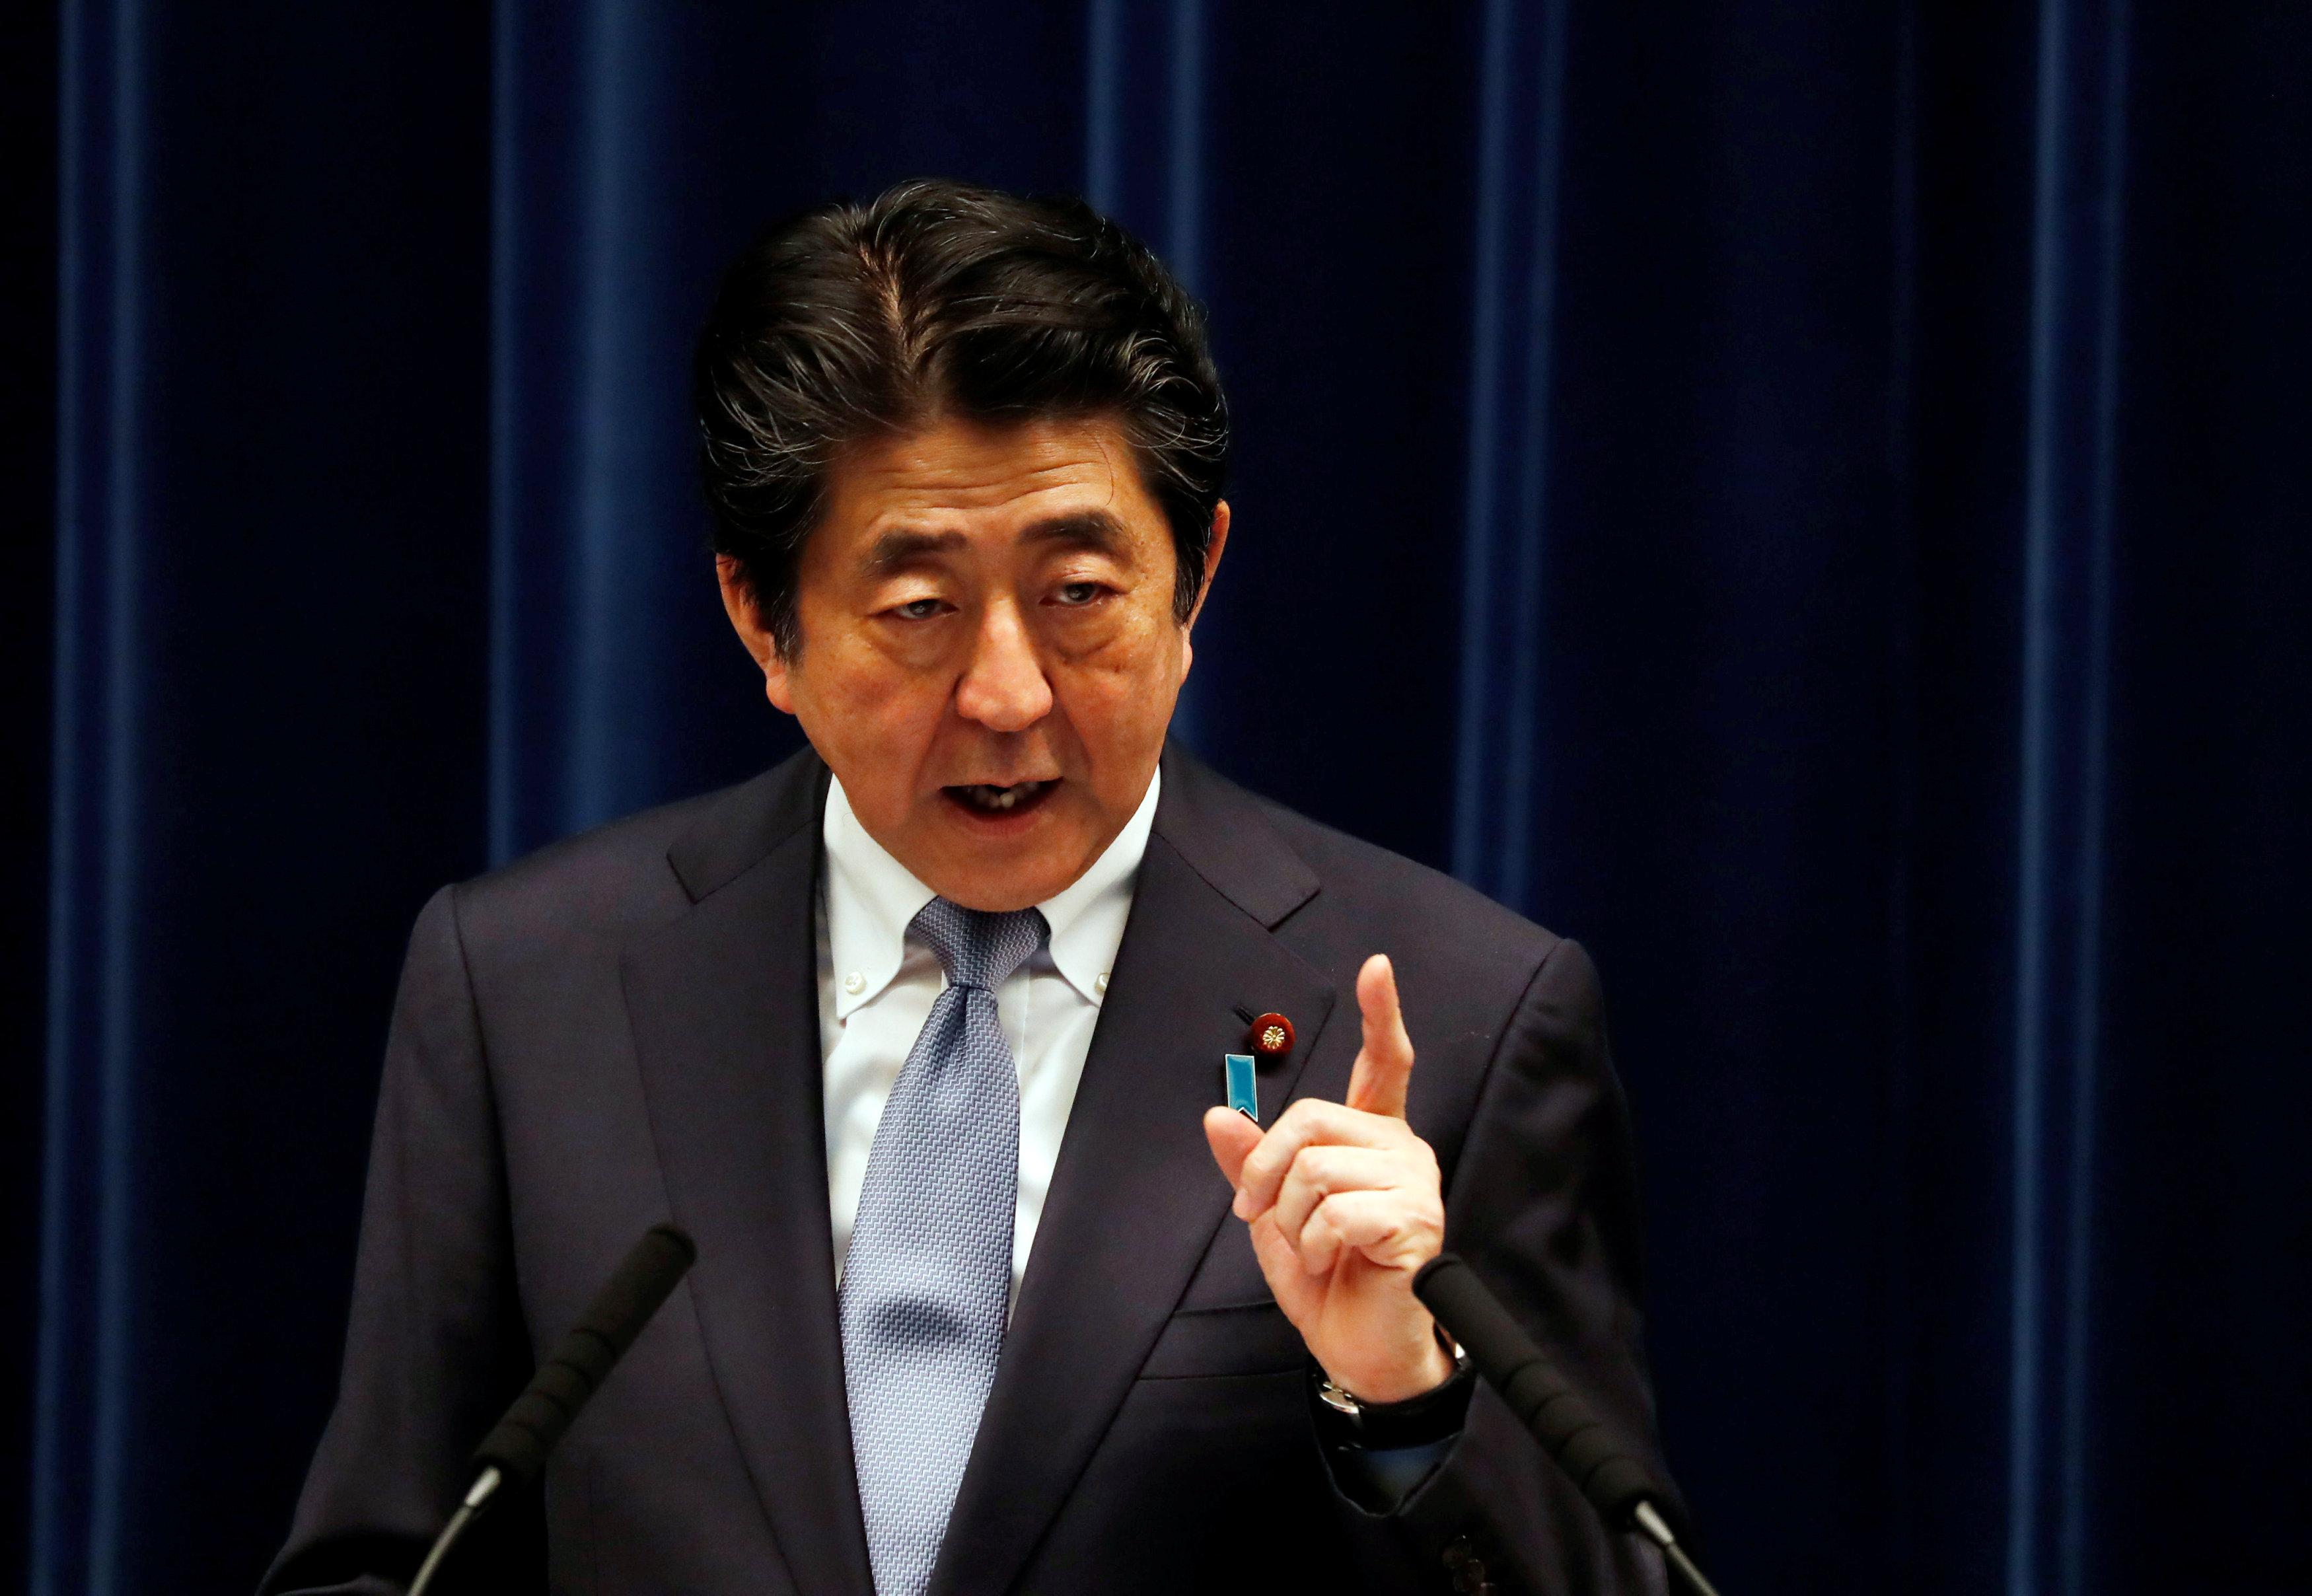 Japan's Prime Minister Shinzo Abe speaks at a news conference in Tokyo, Japan, July 20, 2018.  Kim Kyung-Hoon